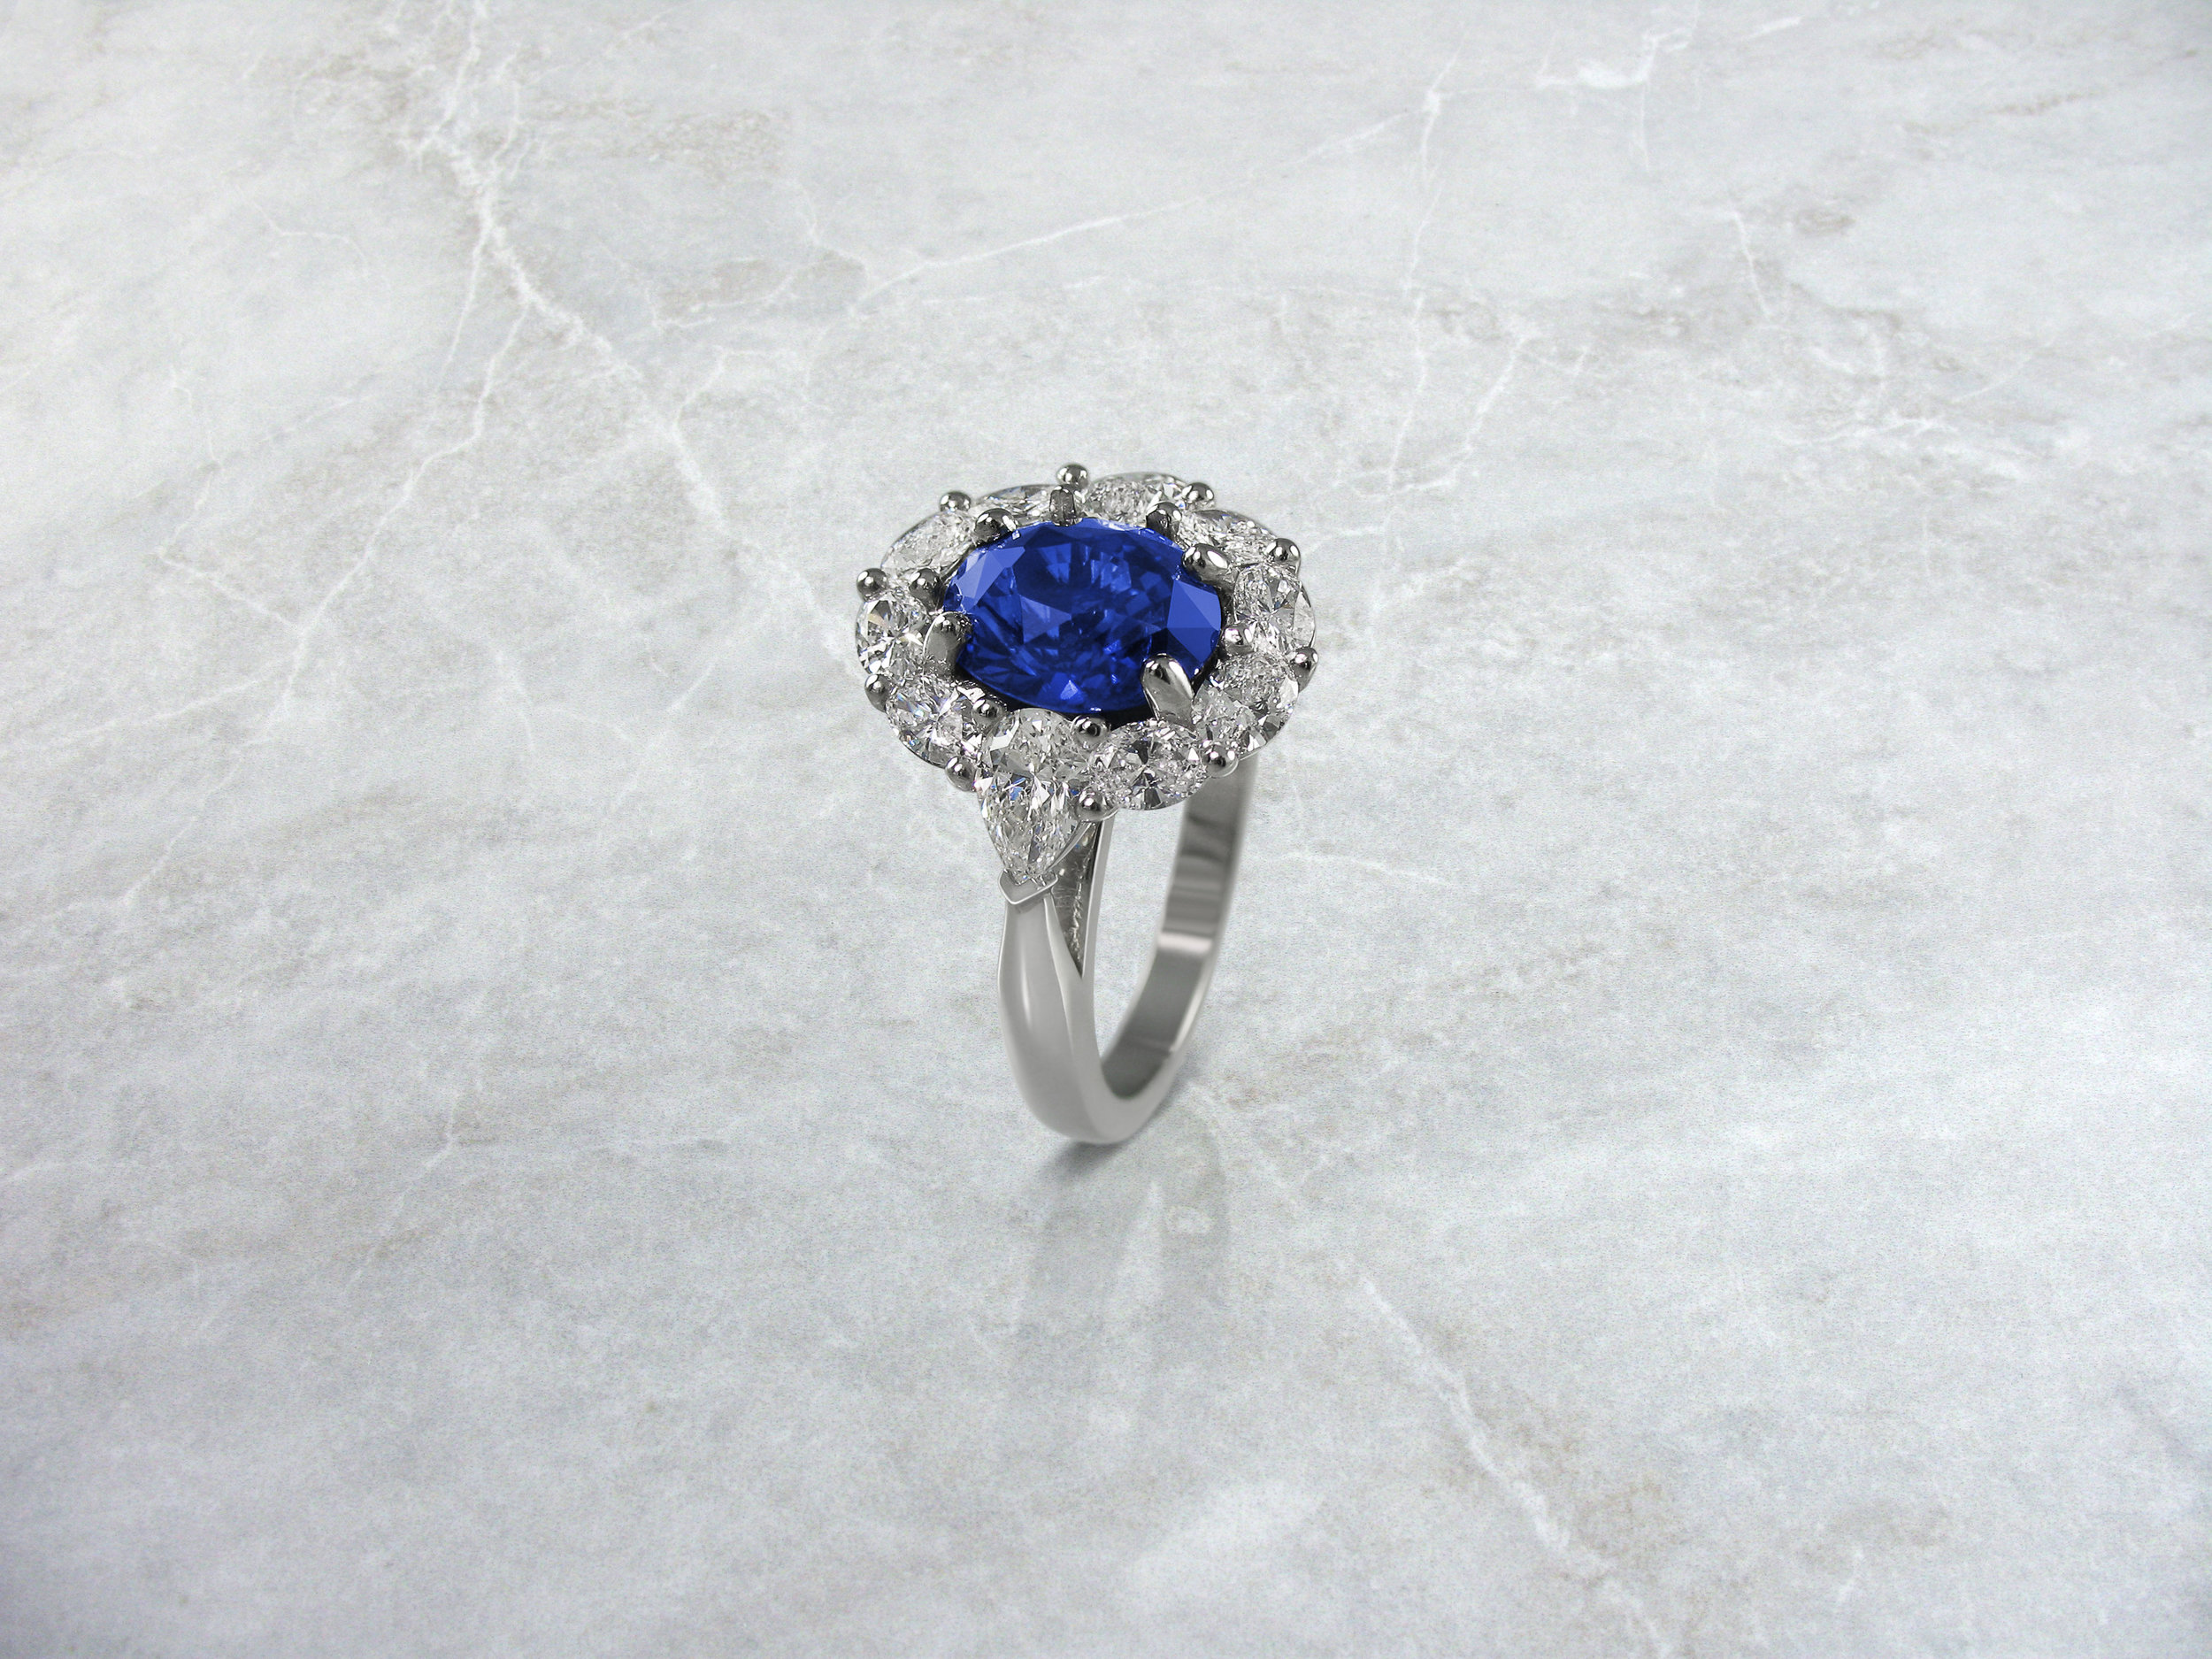 Oval sapphire and diamond cluster engagement ring with pear shaped side diamonds